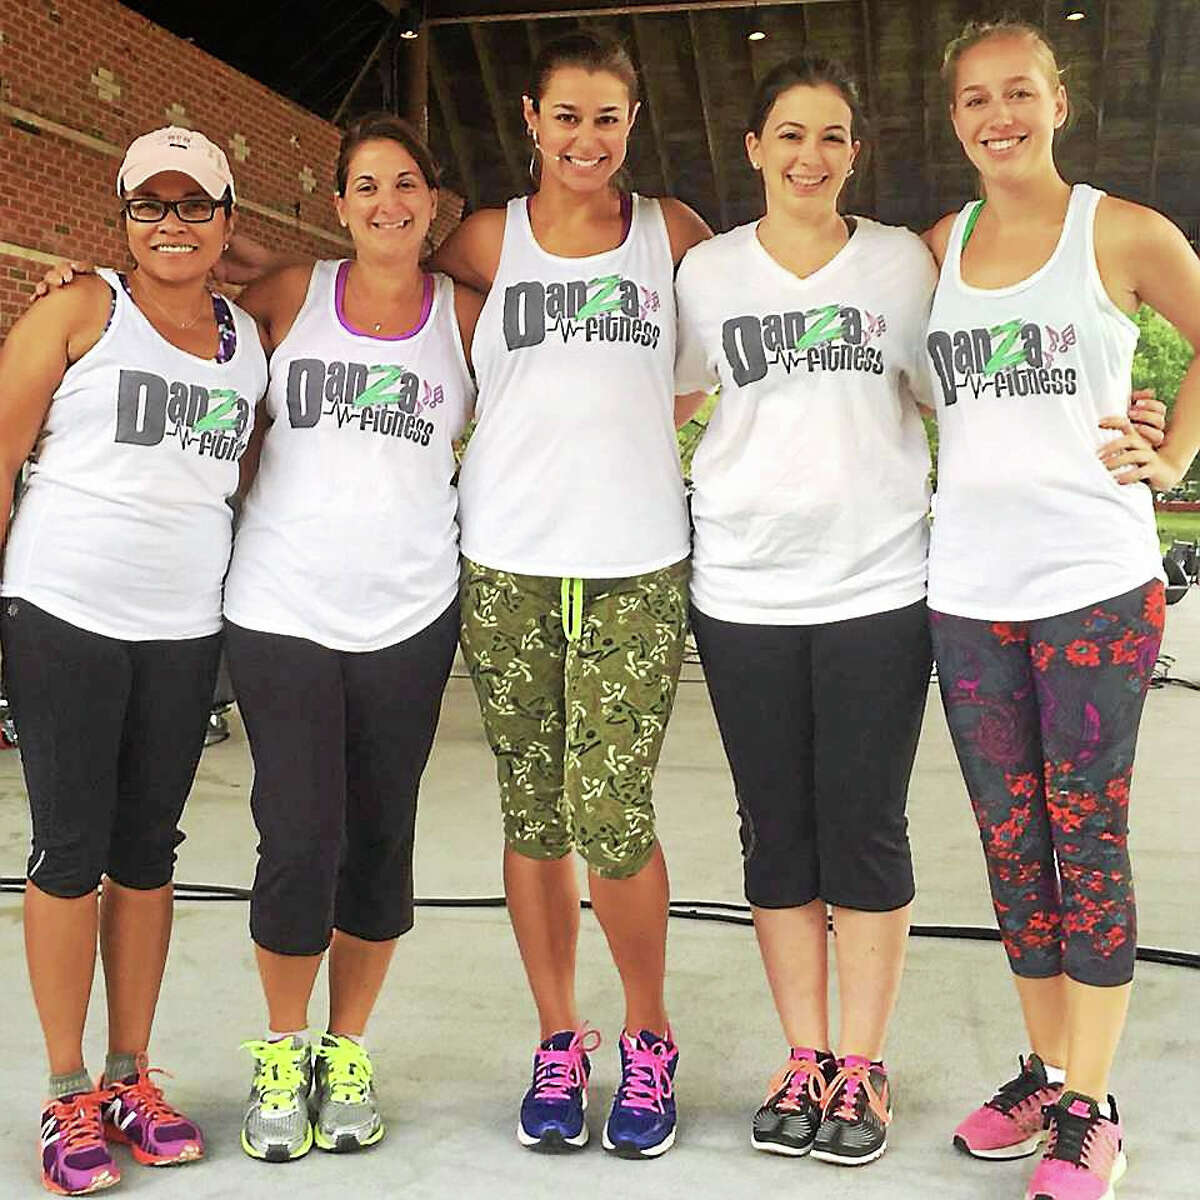 Danza Fitness on Saybrook Road in Middletown is celebrating a year in business. Shown from left are: Clients Lillian Ulan and Christina Lardizzone, owner Danielle Rich, and instructors Briana O'Leary and Sabrina Crim.